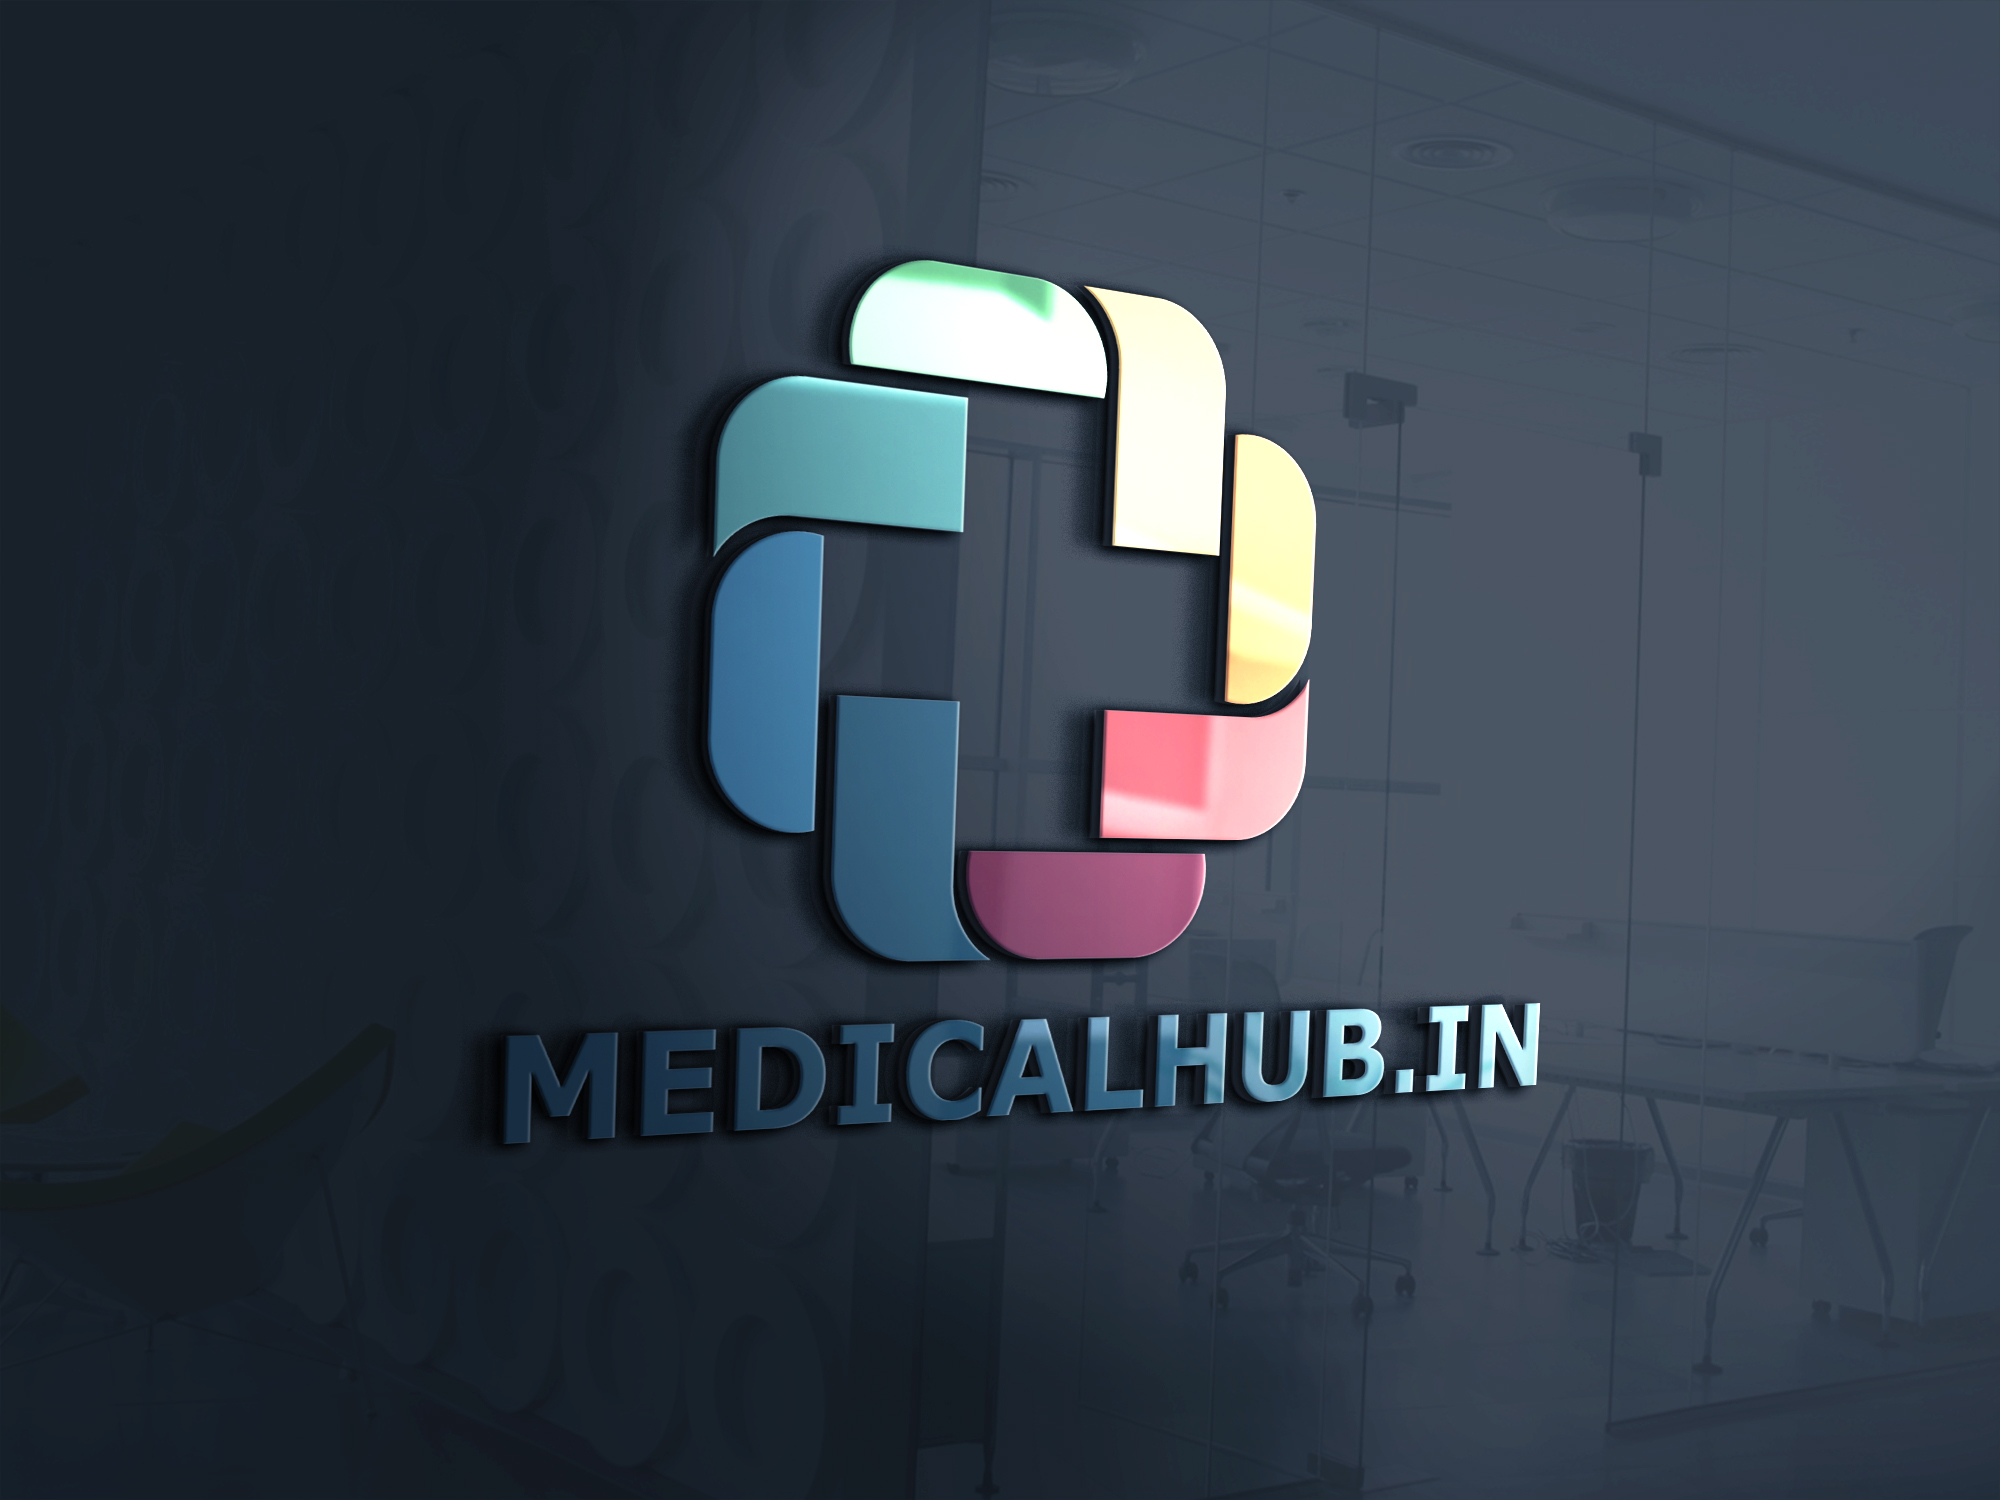 Medicine hub logo design by Badri design